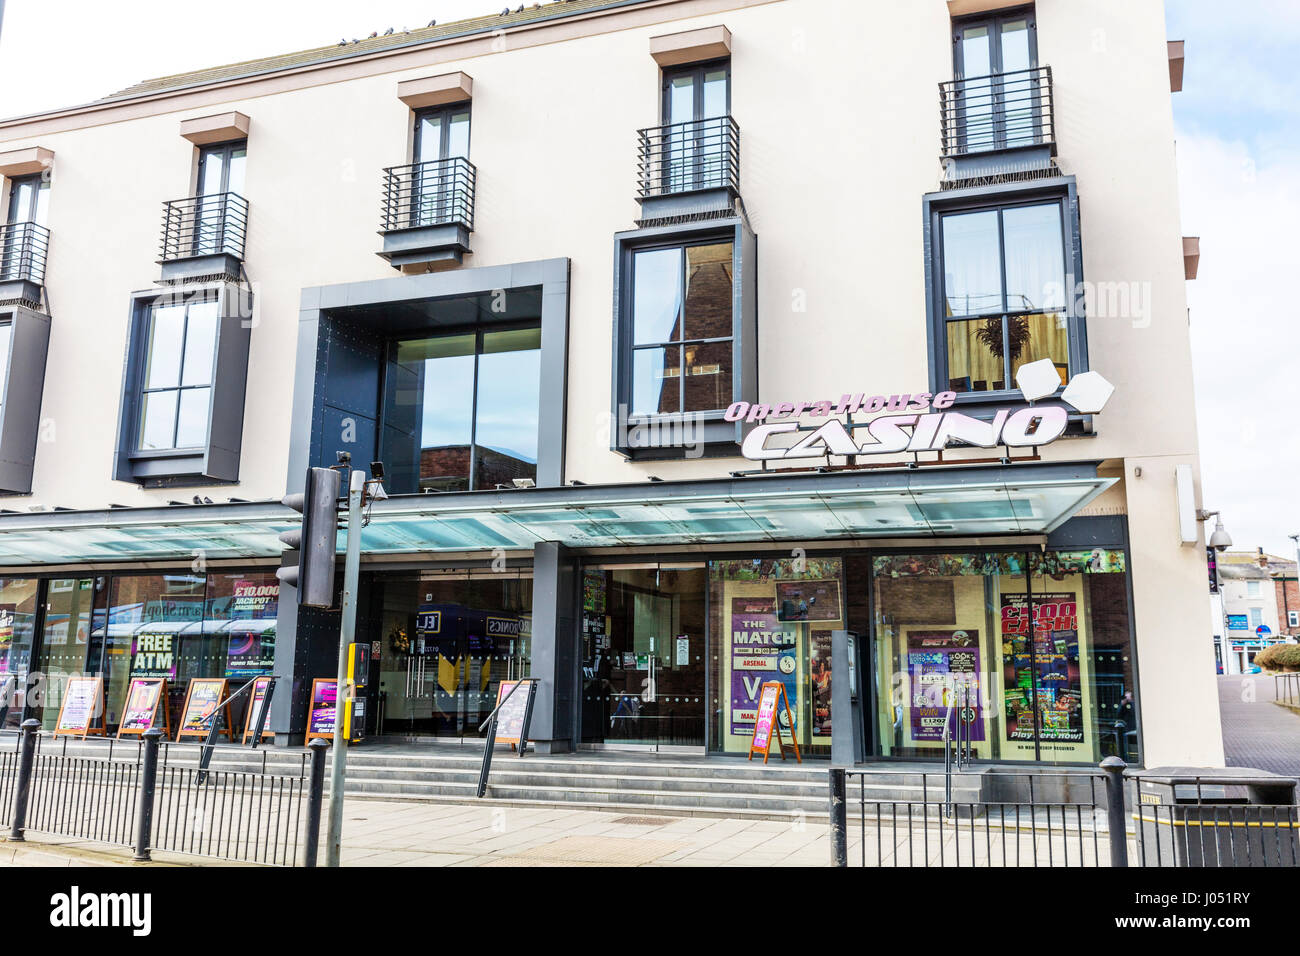 Opera house casino Scarborough Town North Yorkshire UK England Opera house casino Scarborough Town building exterior - Stock Image